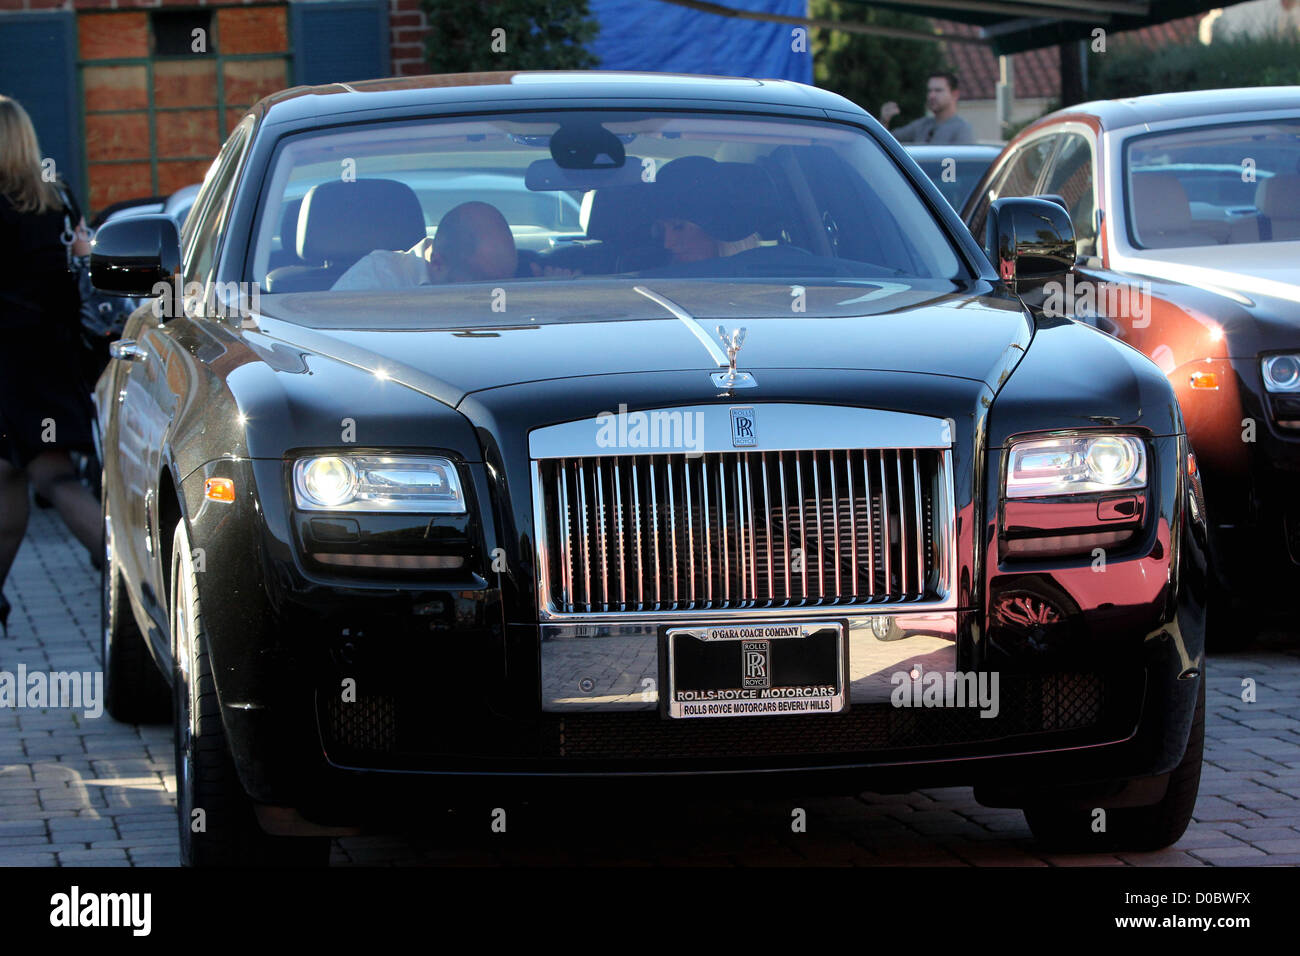 Paris Hilton Picks Up Her New Rolls Royce Ghost From A Luxury Car